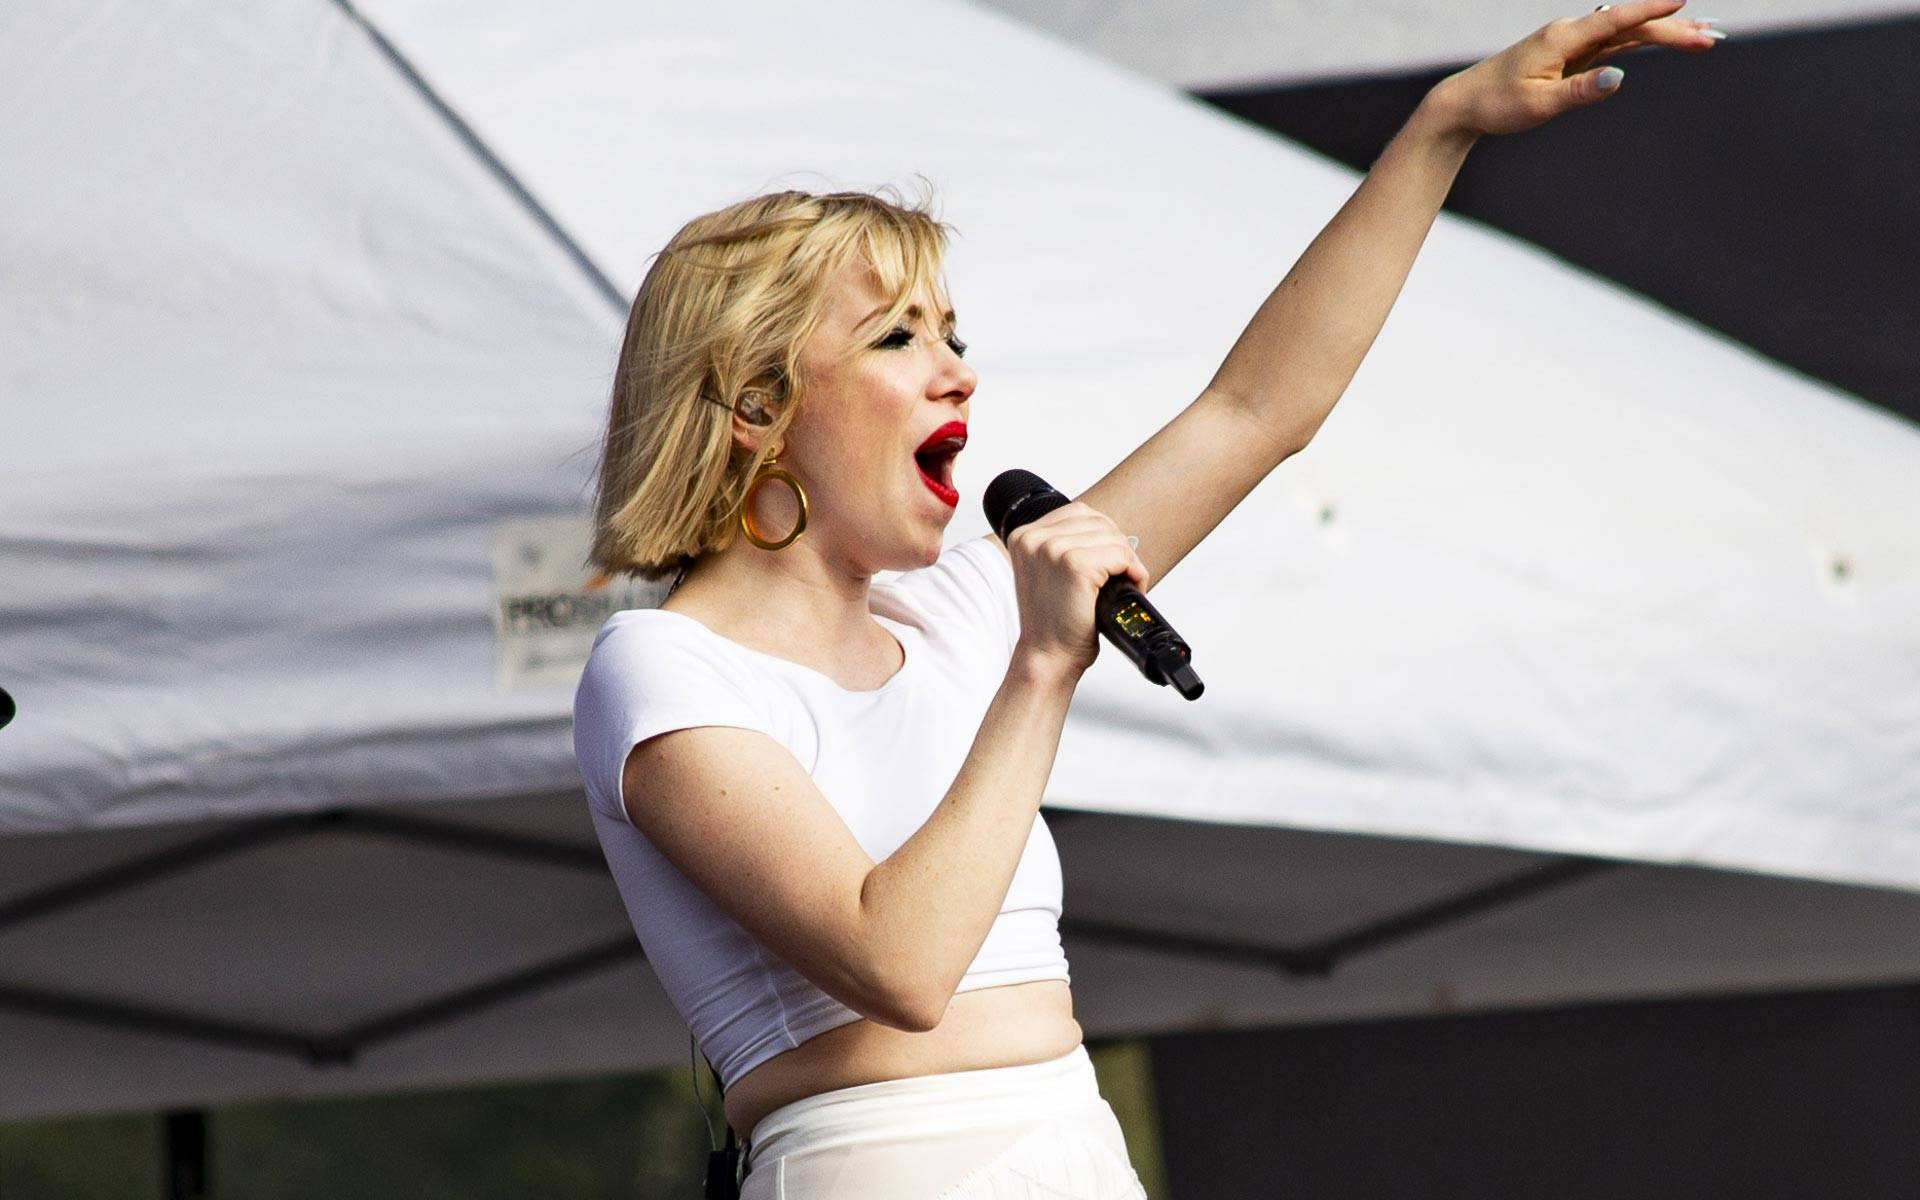 Carly Rae Jepsen, an outspoken ally for LGBTQ issues, performs Friday, Aug. 10, at Outside Lands in San Francisco. Jepsen's set punctuated a noticably queer-friendly vibe at this year's edition of the huge music festival. Estefany Gonzales